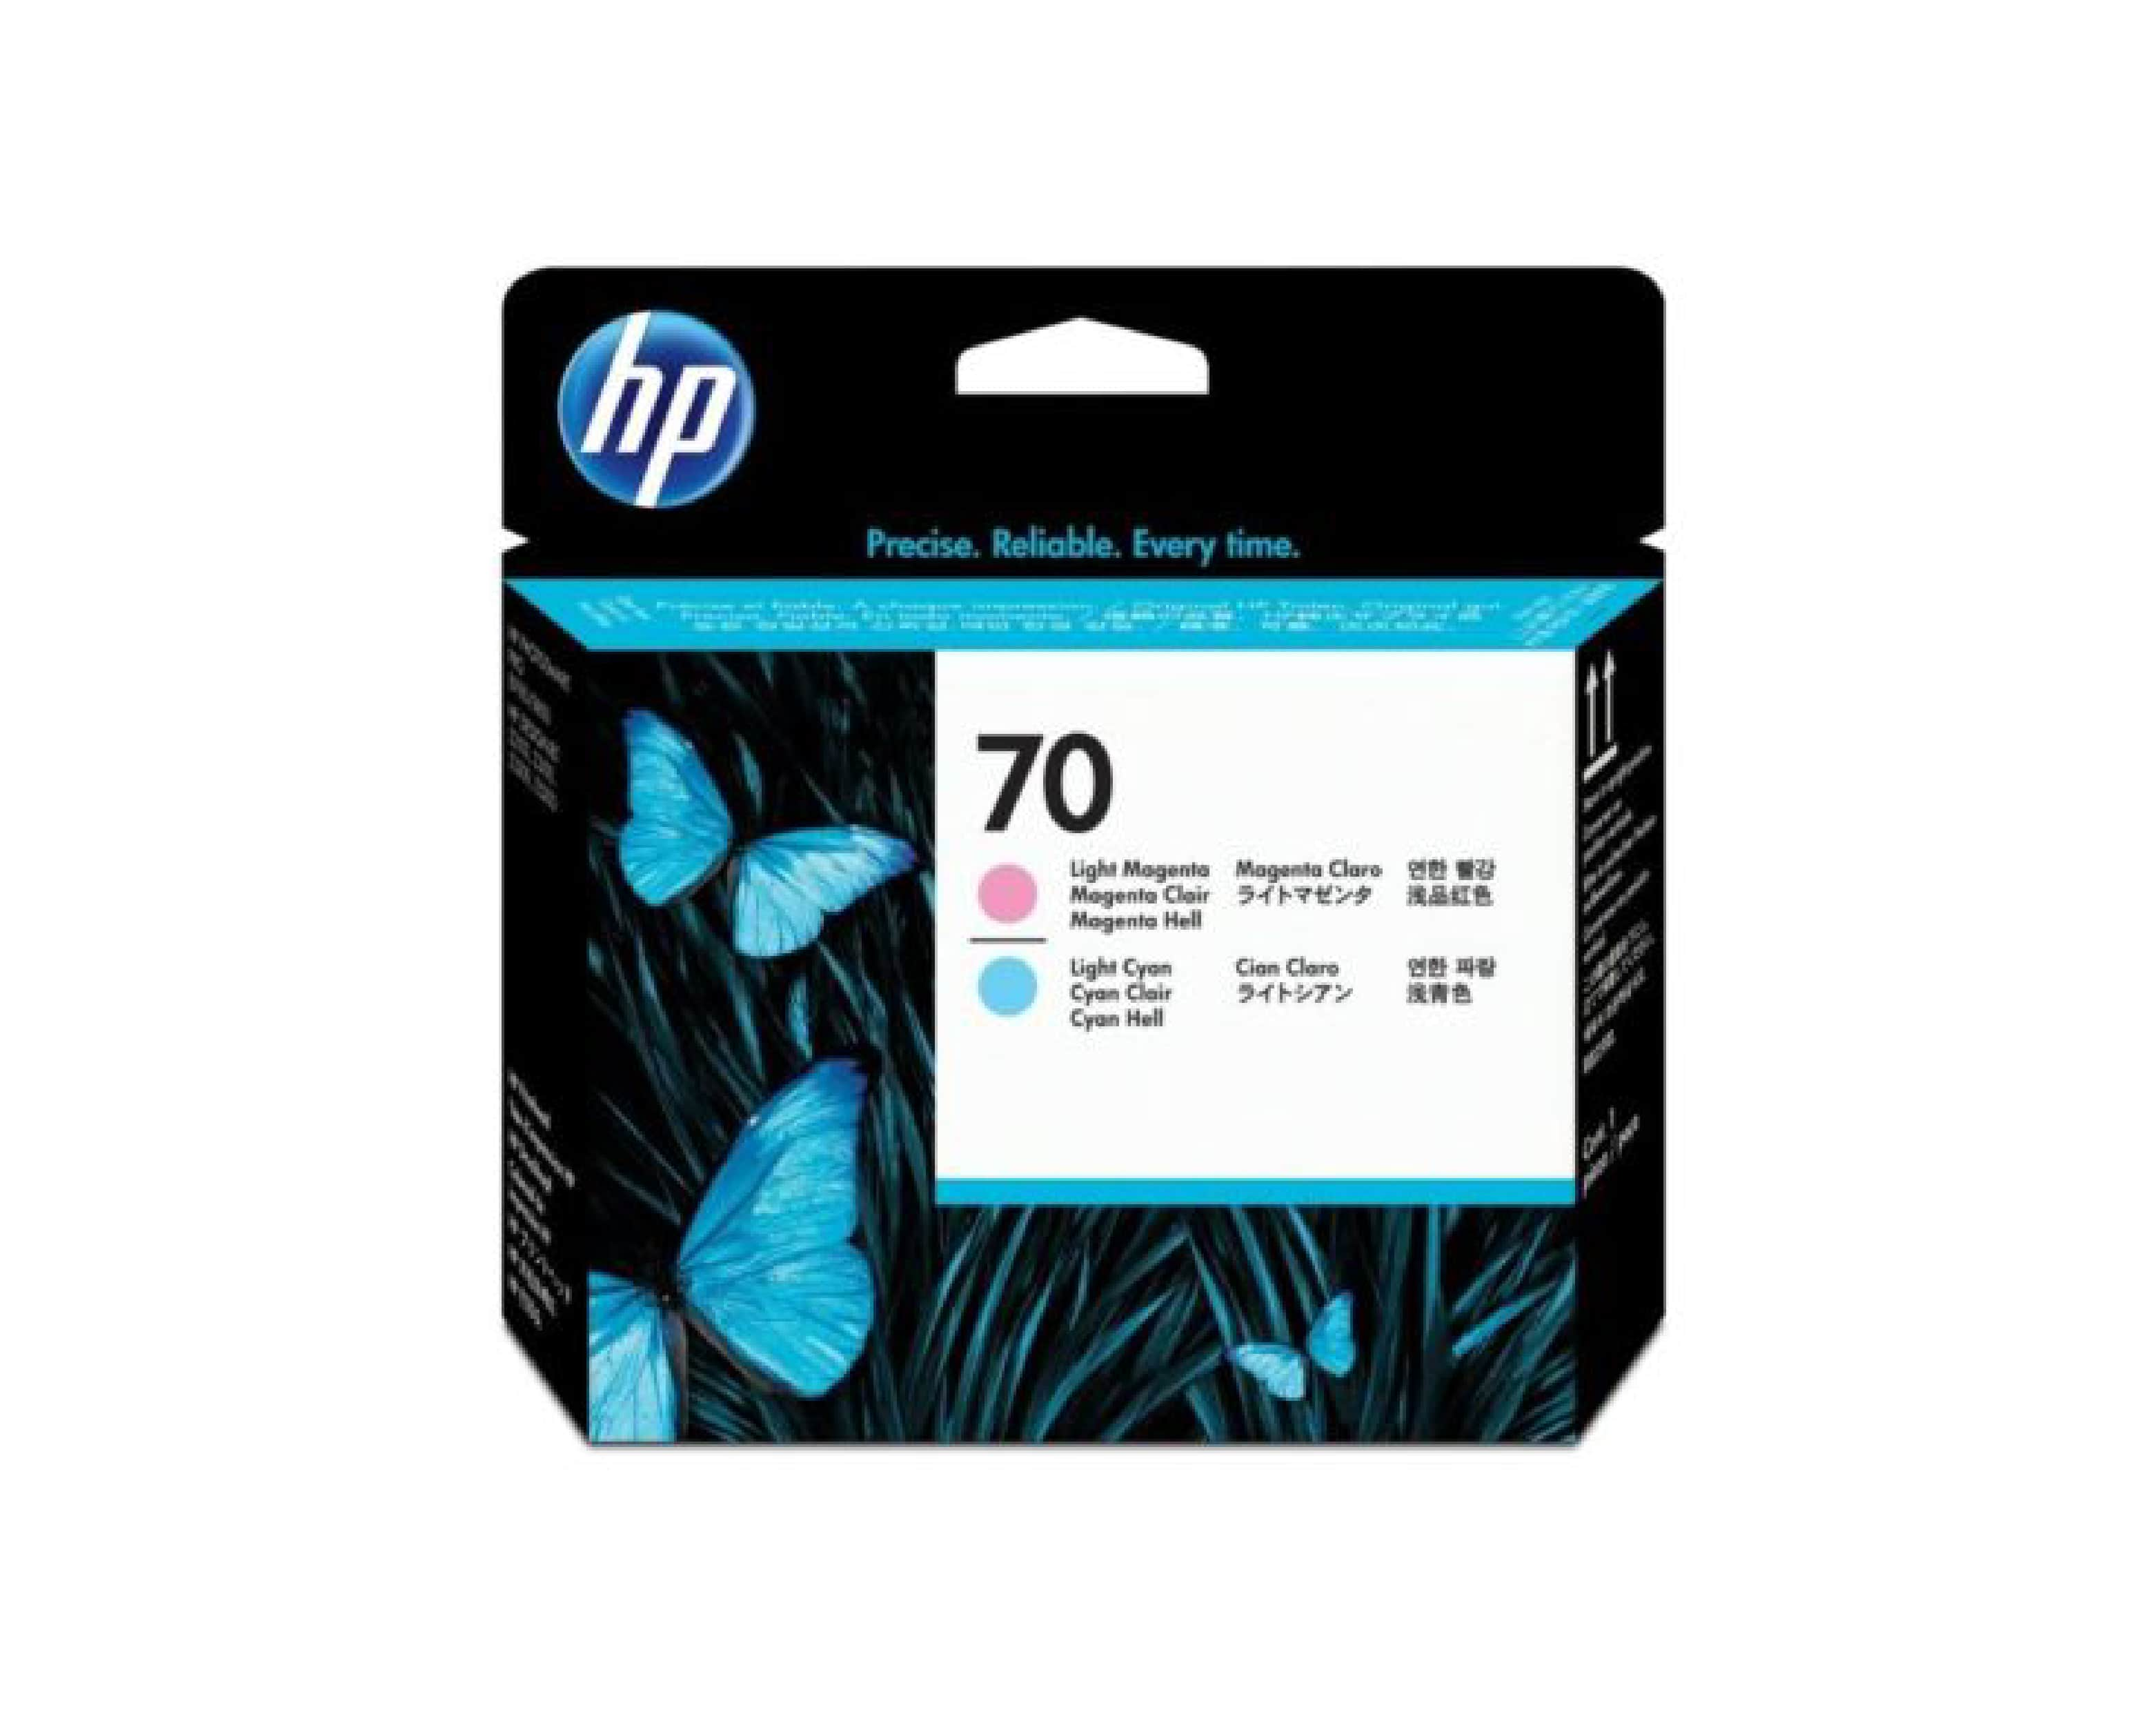 HP 70 DesignJet Printhead - Light Magenta & Light Cyan